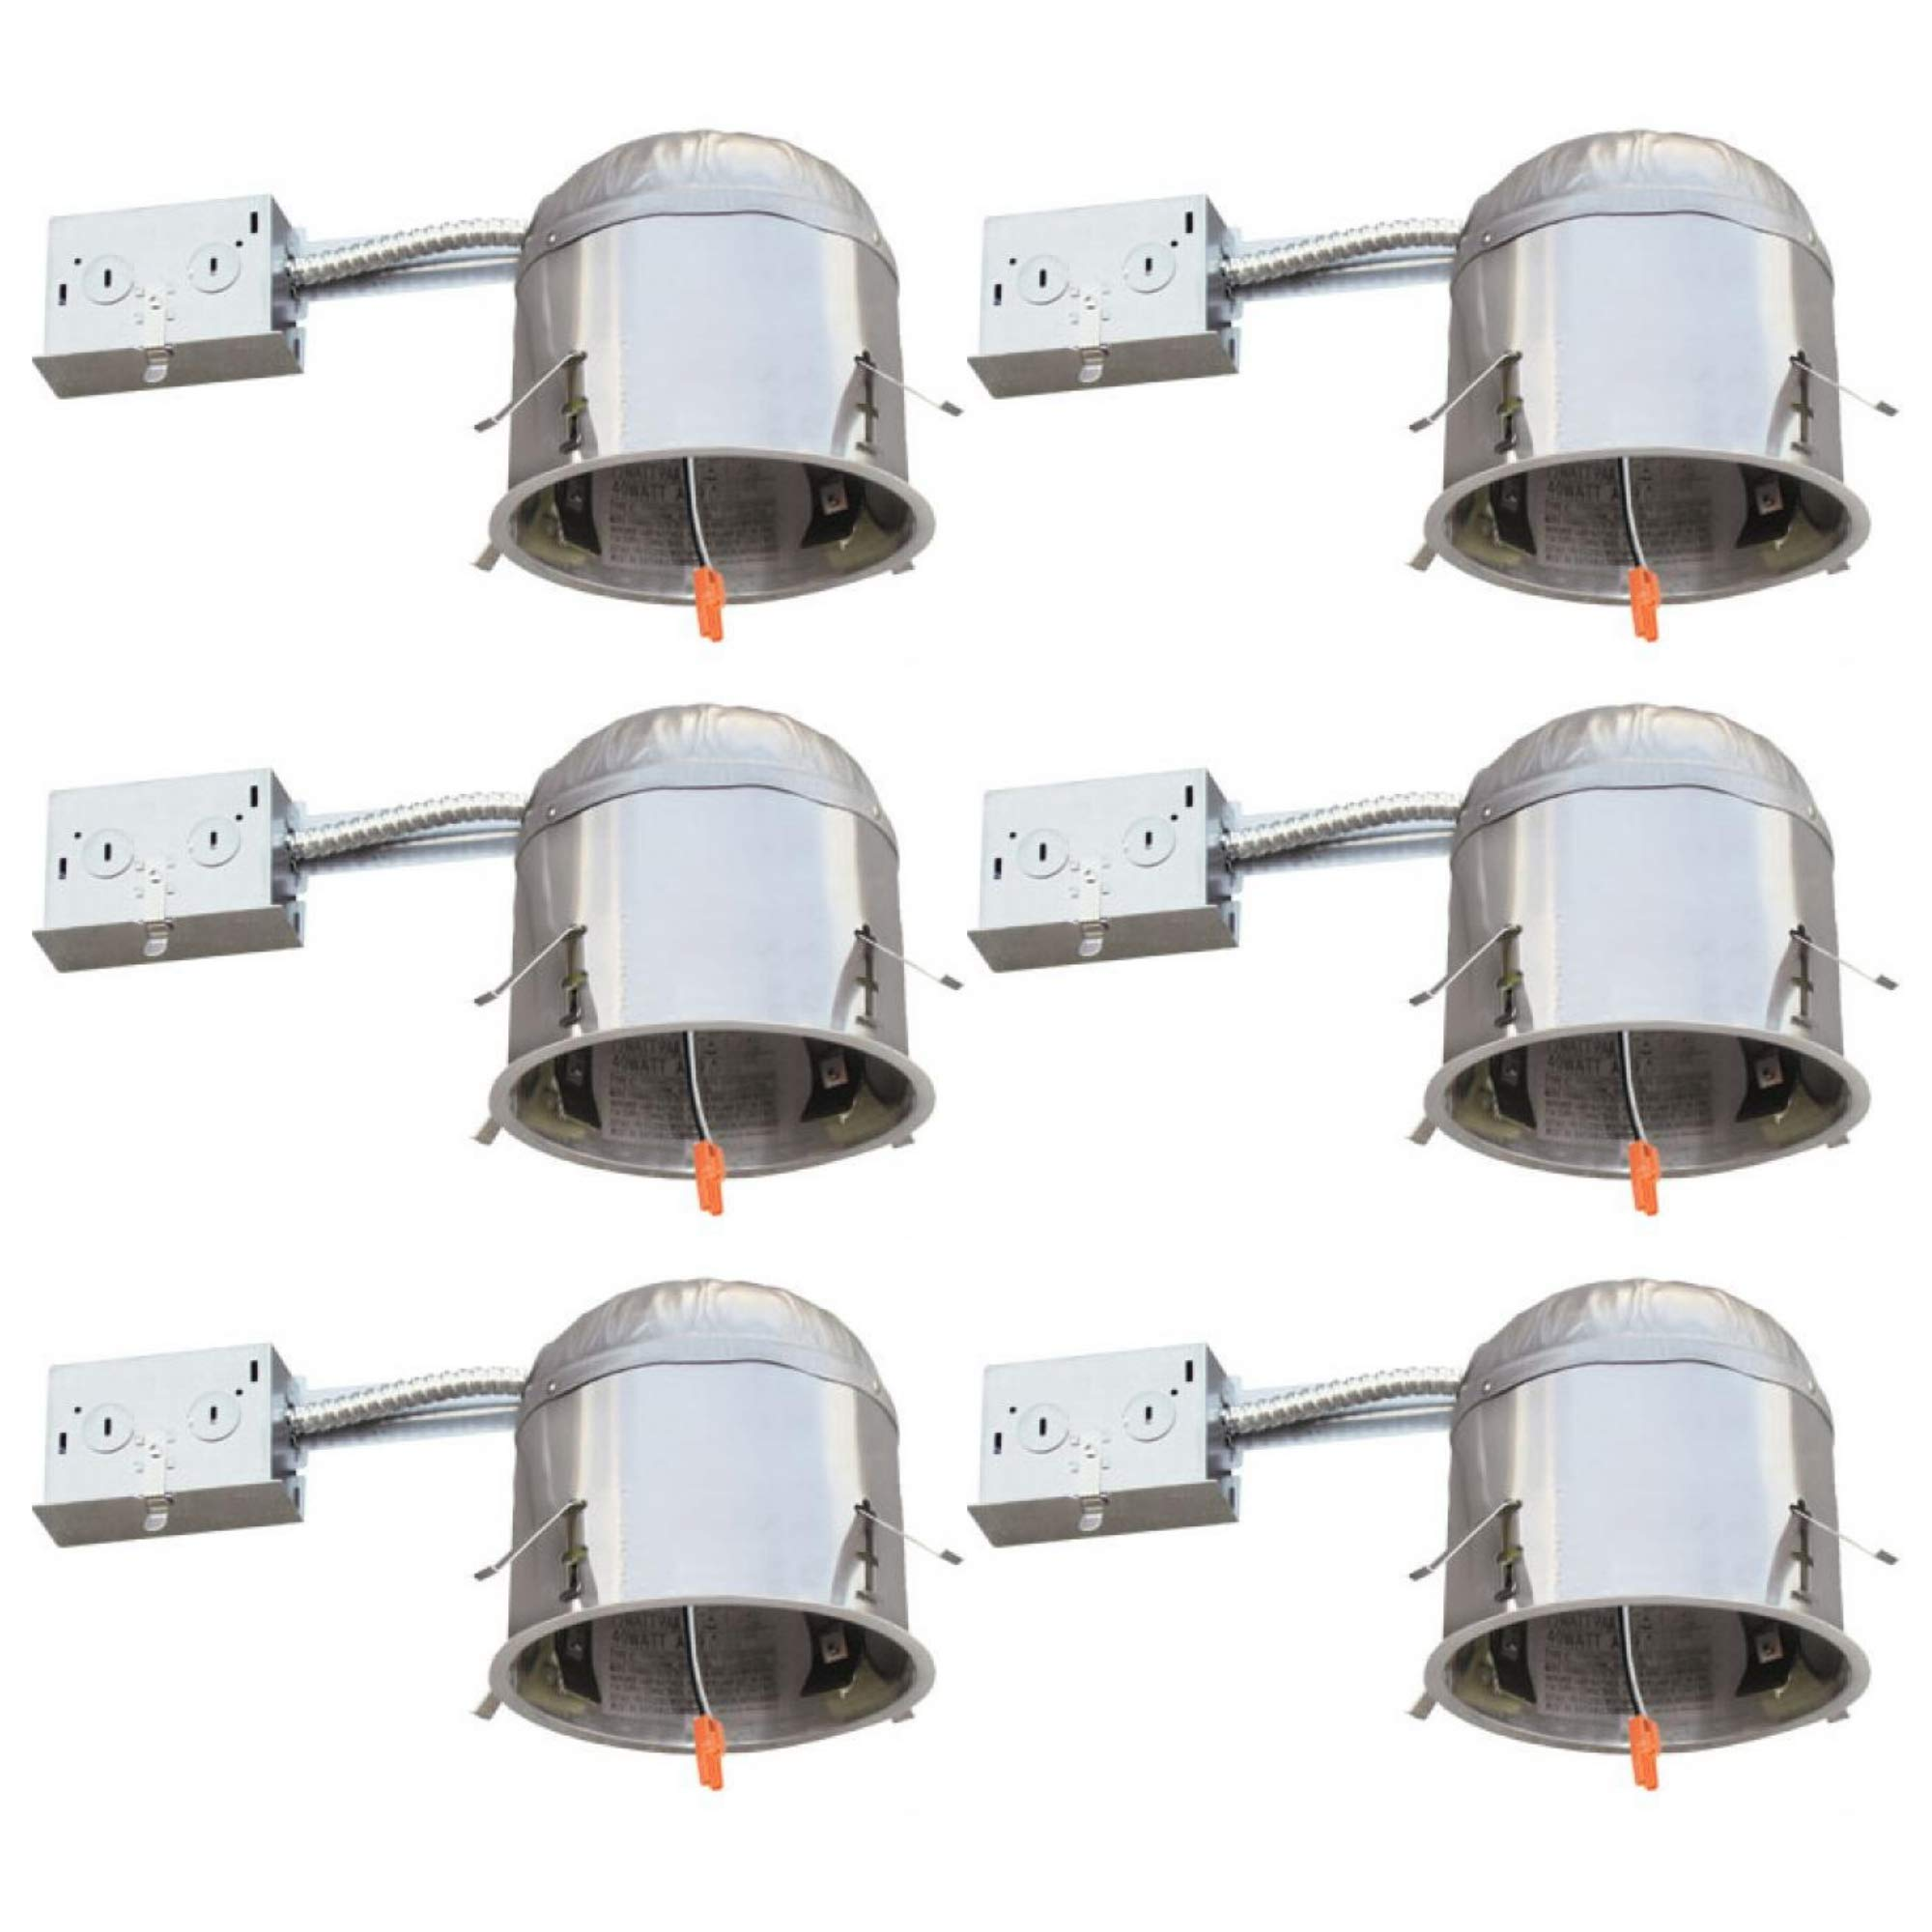 Four-Bros Lighting RM5/LED Remodel Housing 6 Pack-5'' LED Recessed Can Light Airtight 75 Max Wattage,IC Rated and Tile 24 Certified, 5 Inch